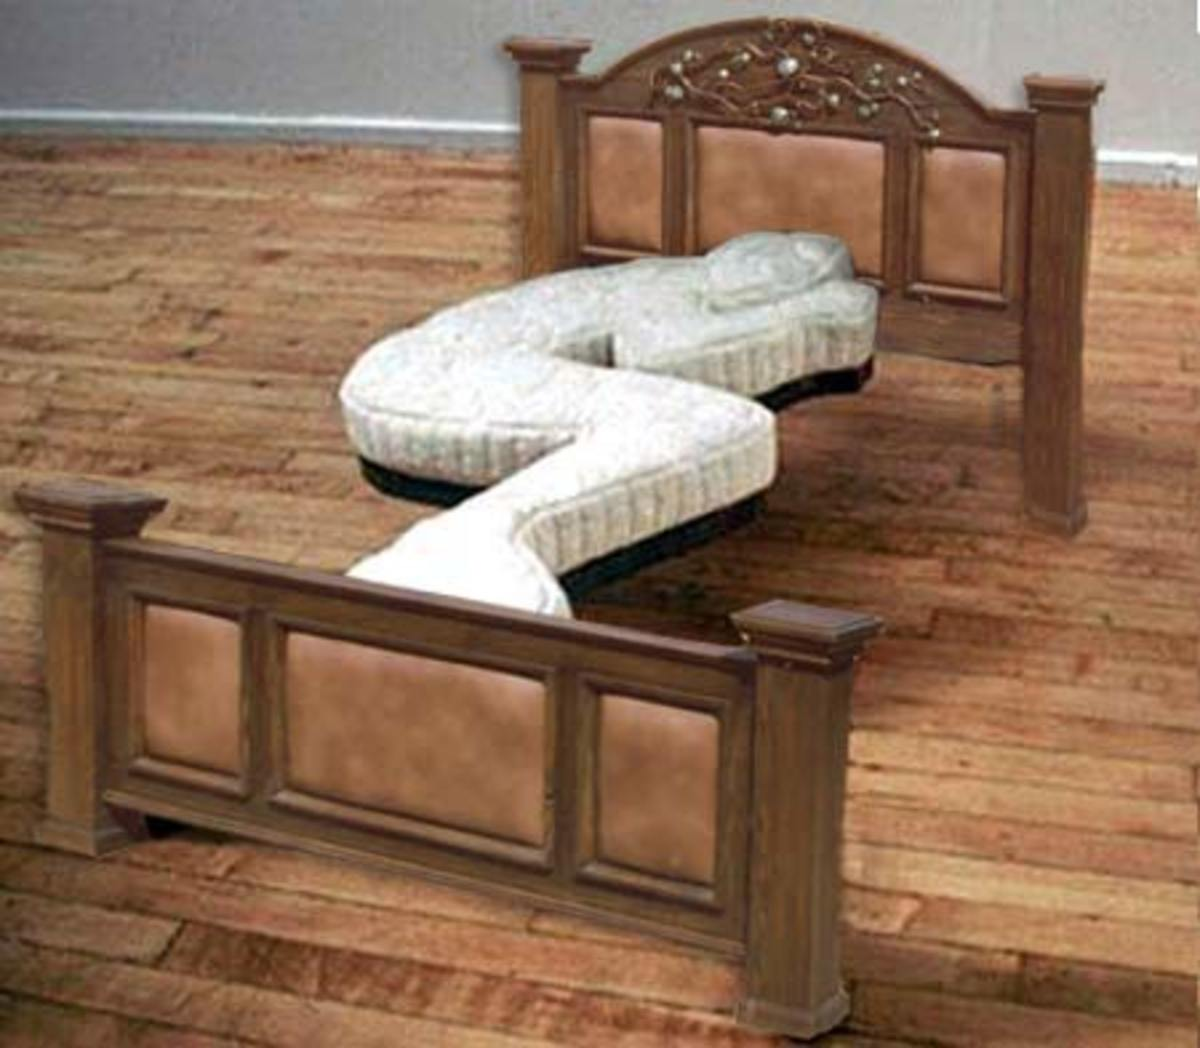 The Fetal Bed